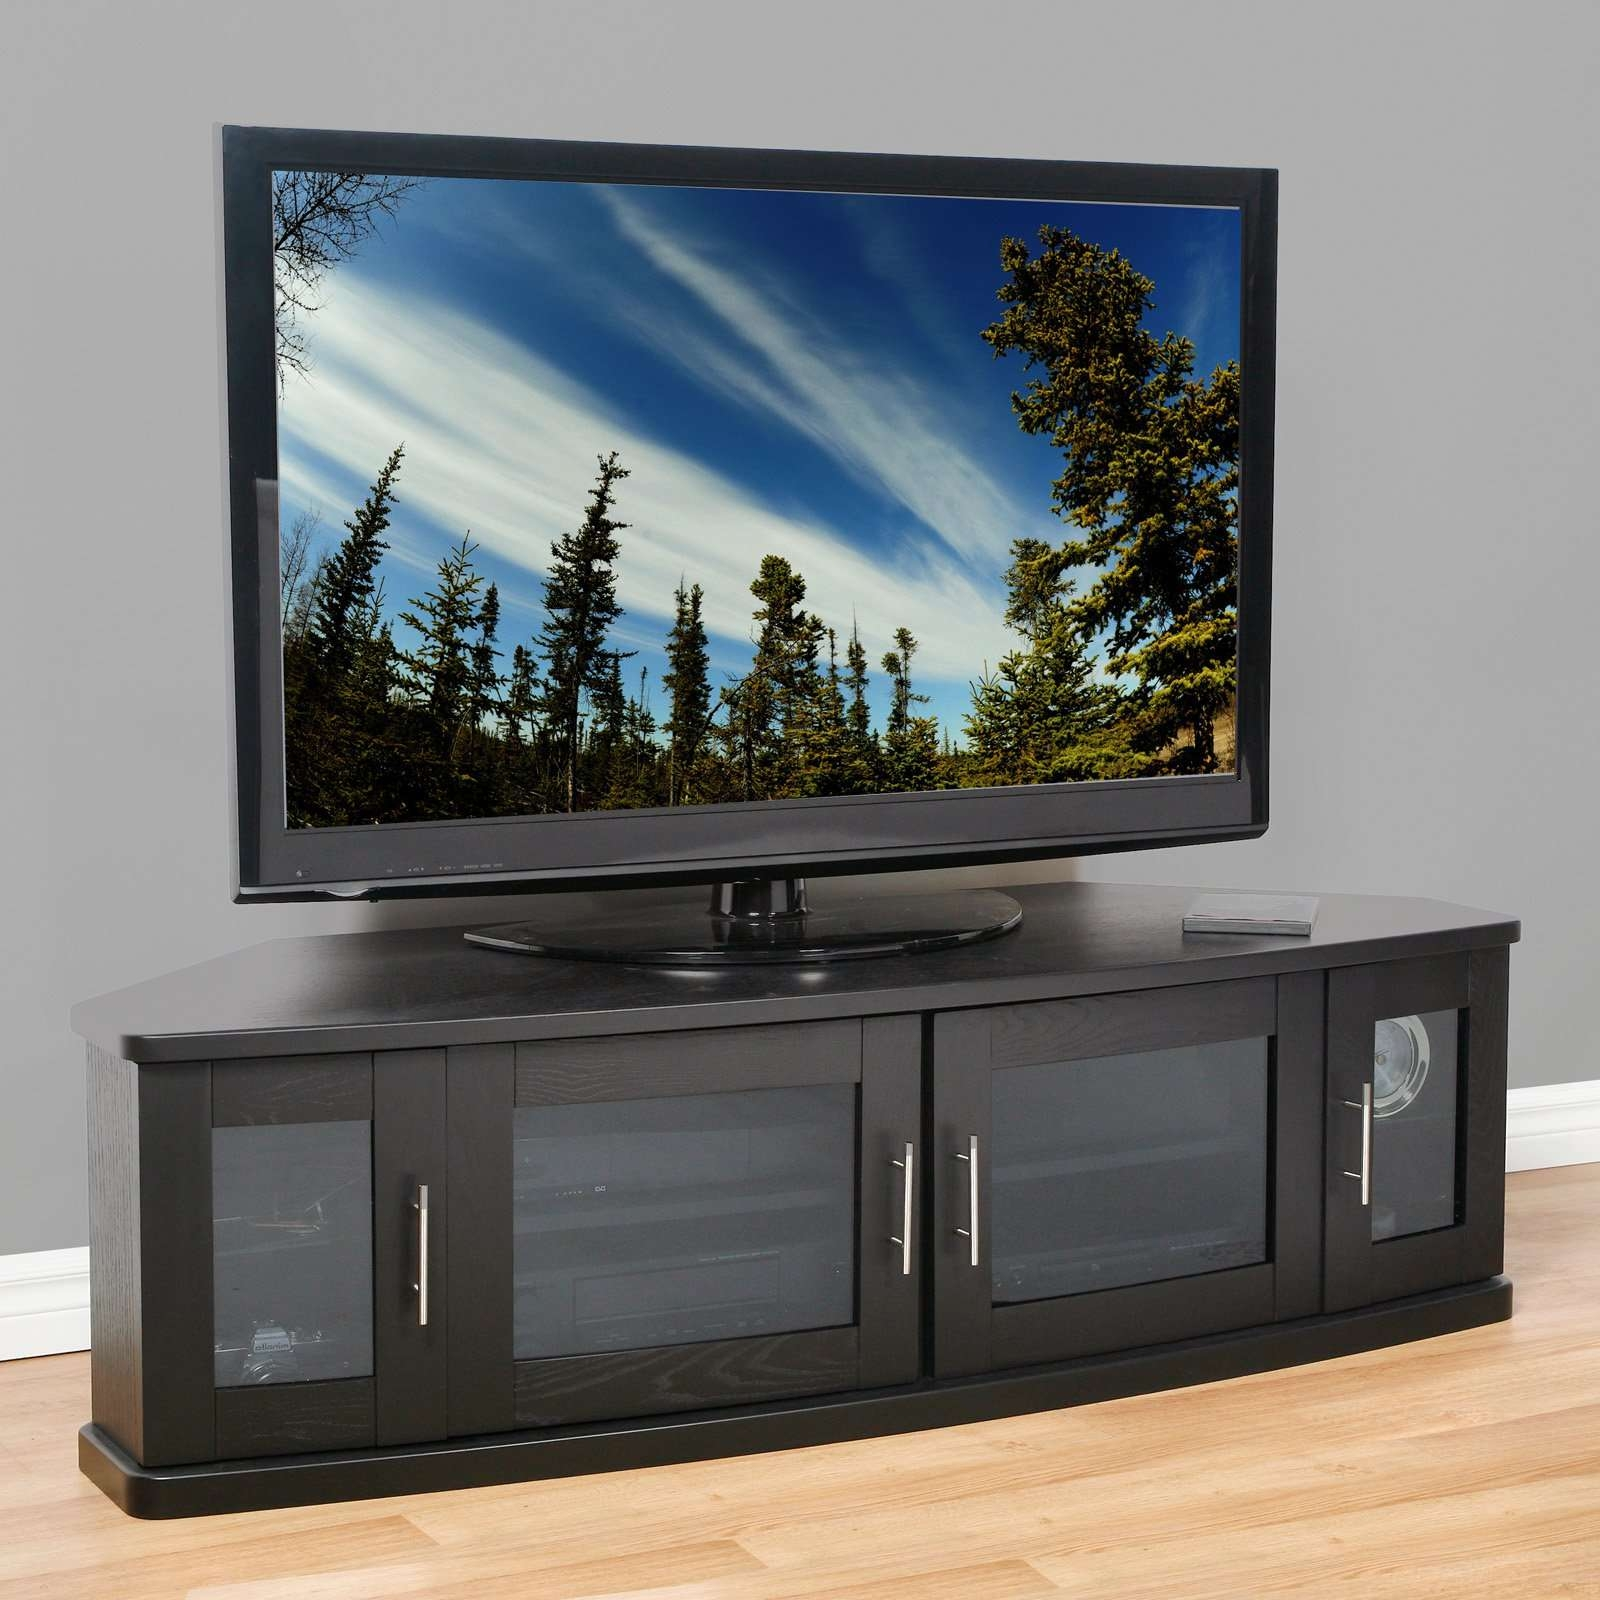 Large Corner Tv Cabinet With 4 Glass Doors And Silver Handle With Regard To Large Corner Tv Stands (View 9 of 15)